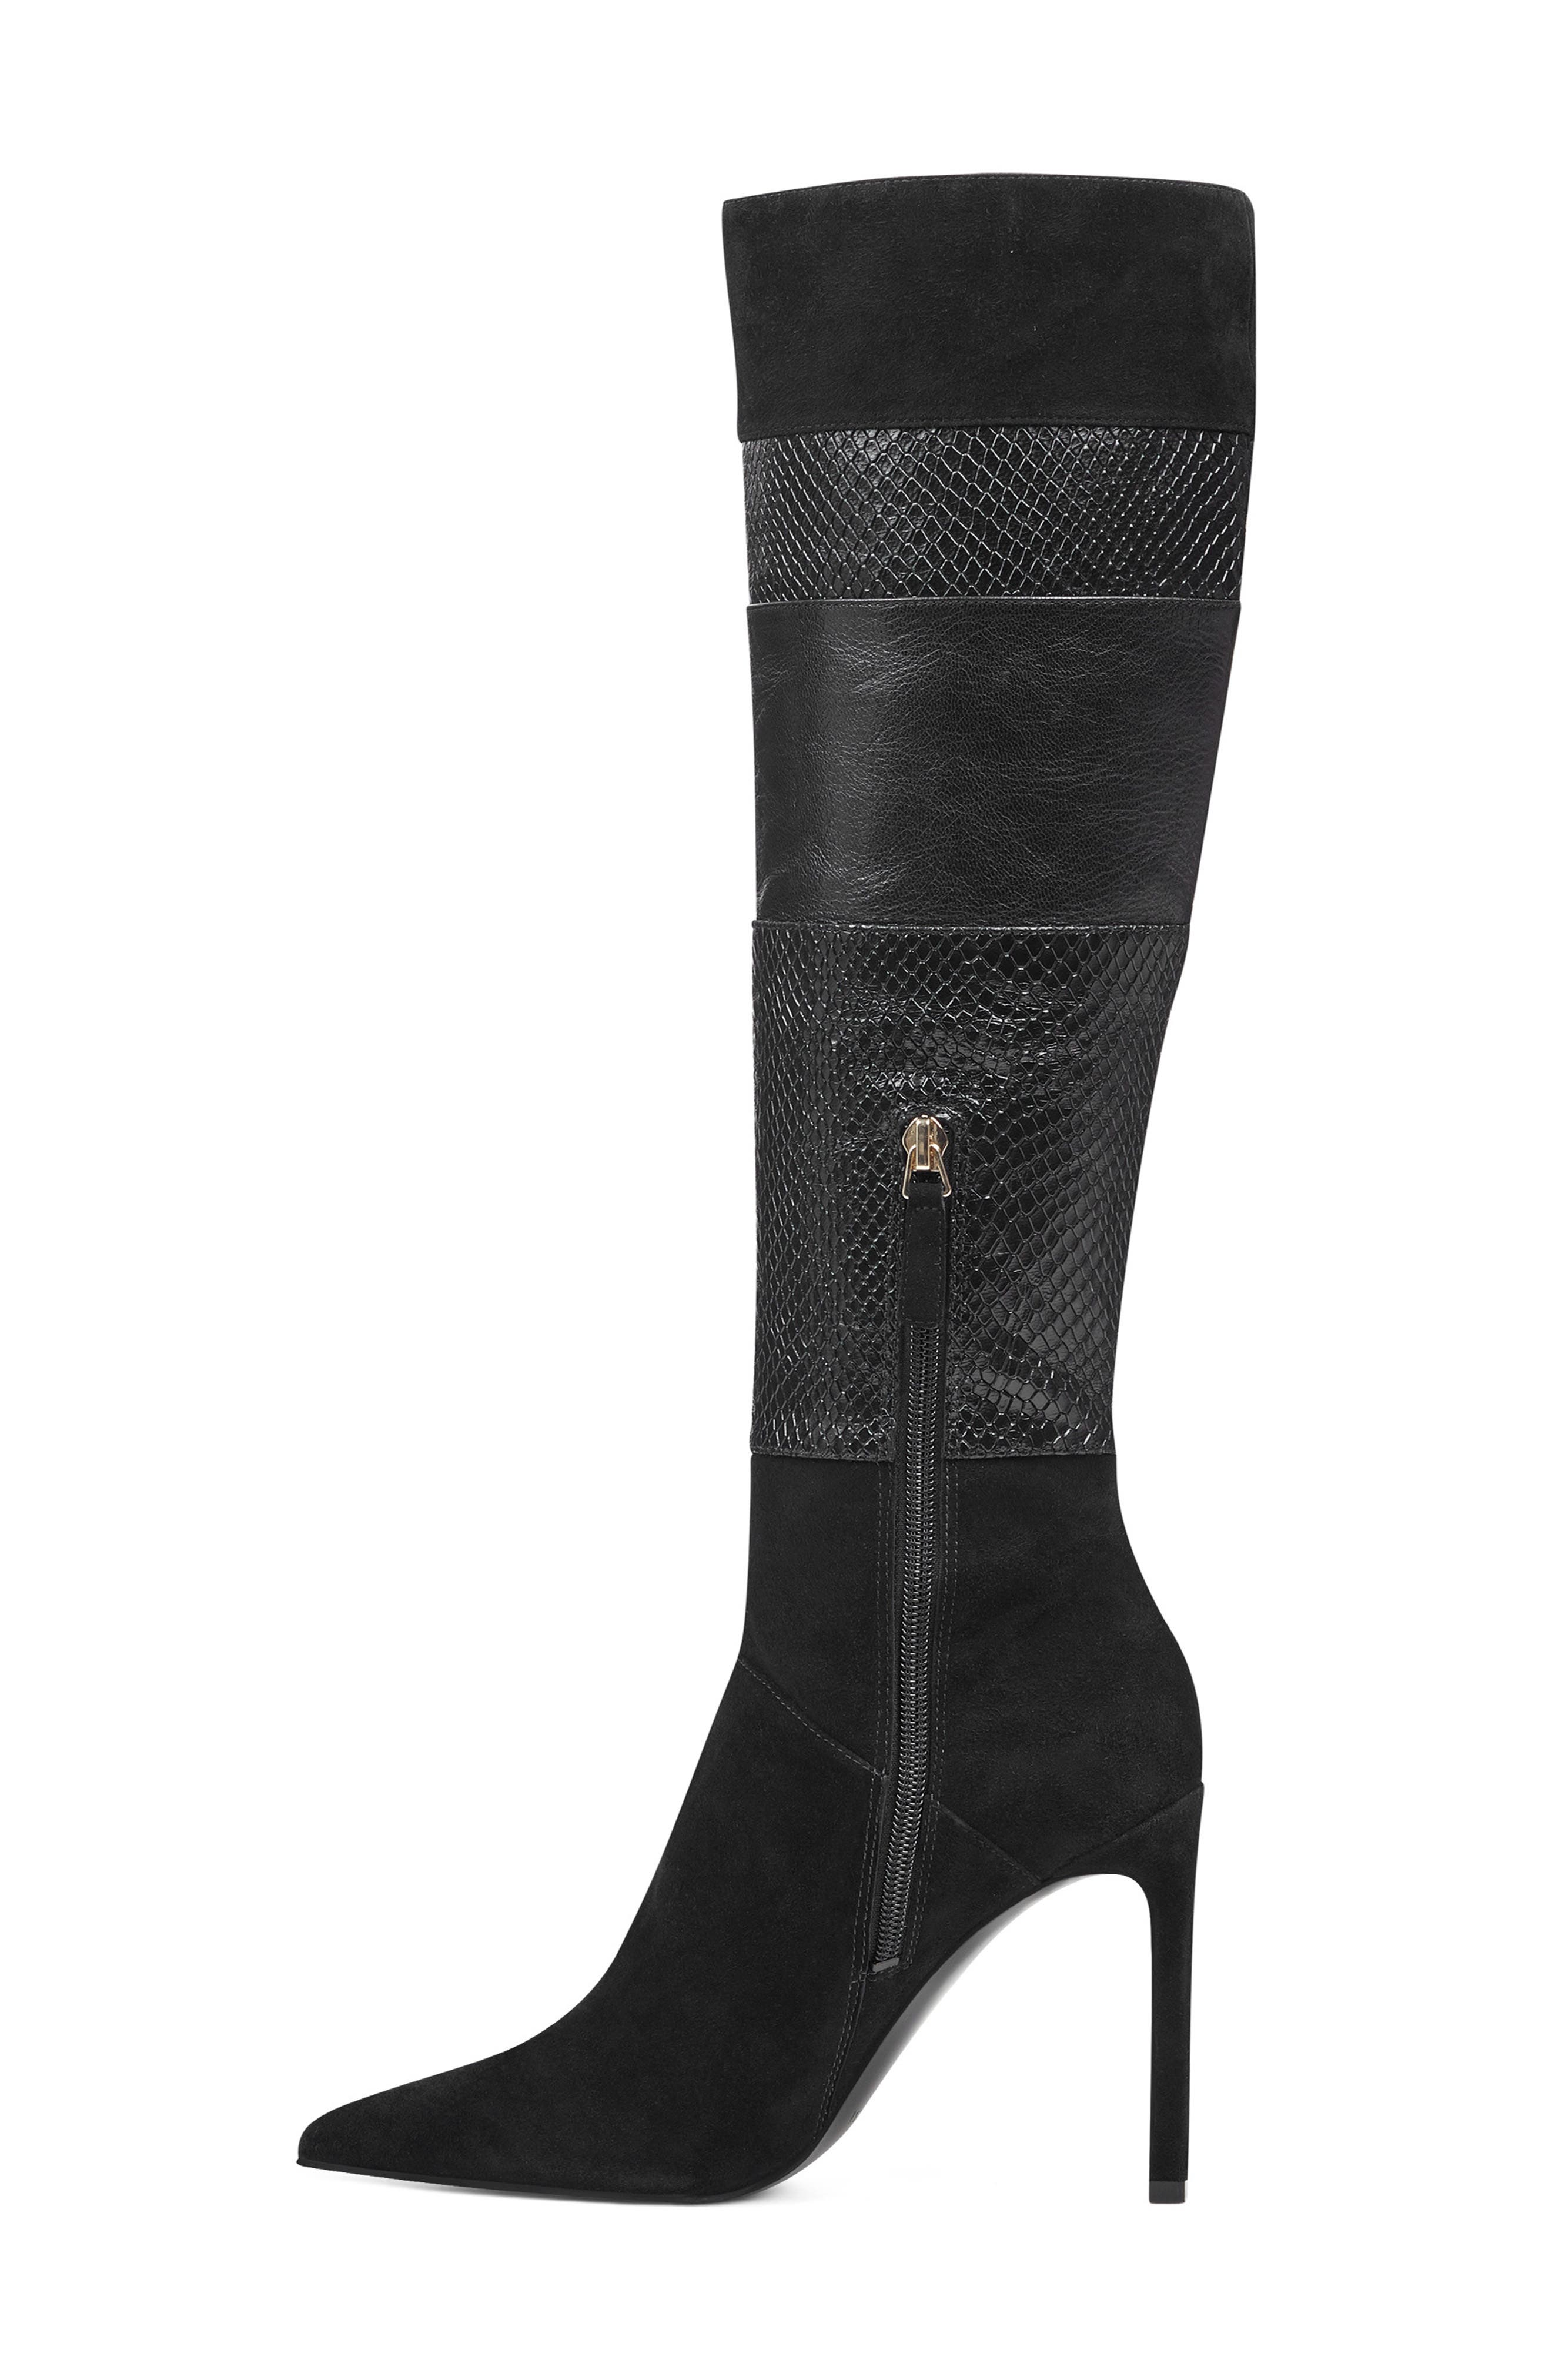 Toprank Blocked Knee High Boot,                             Alternate thumbnail 8, color,                             BLACK SUEDE